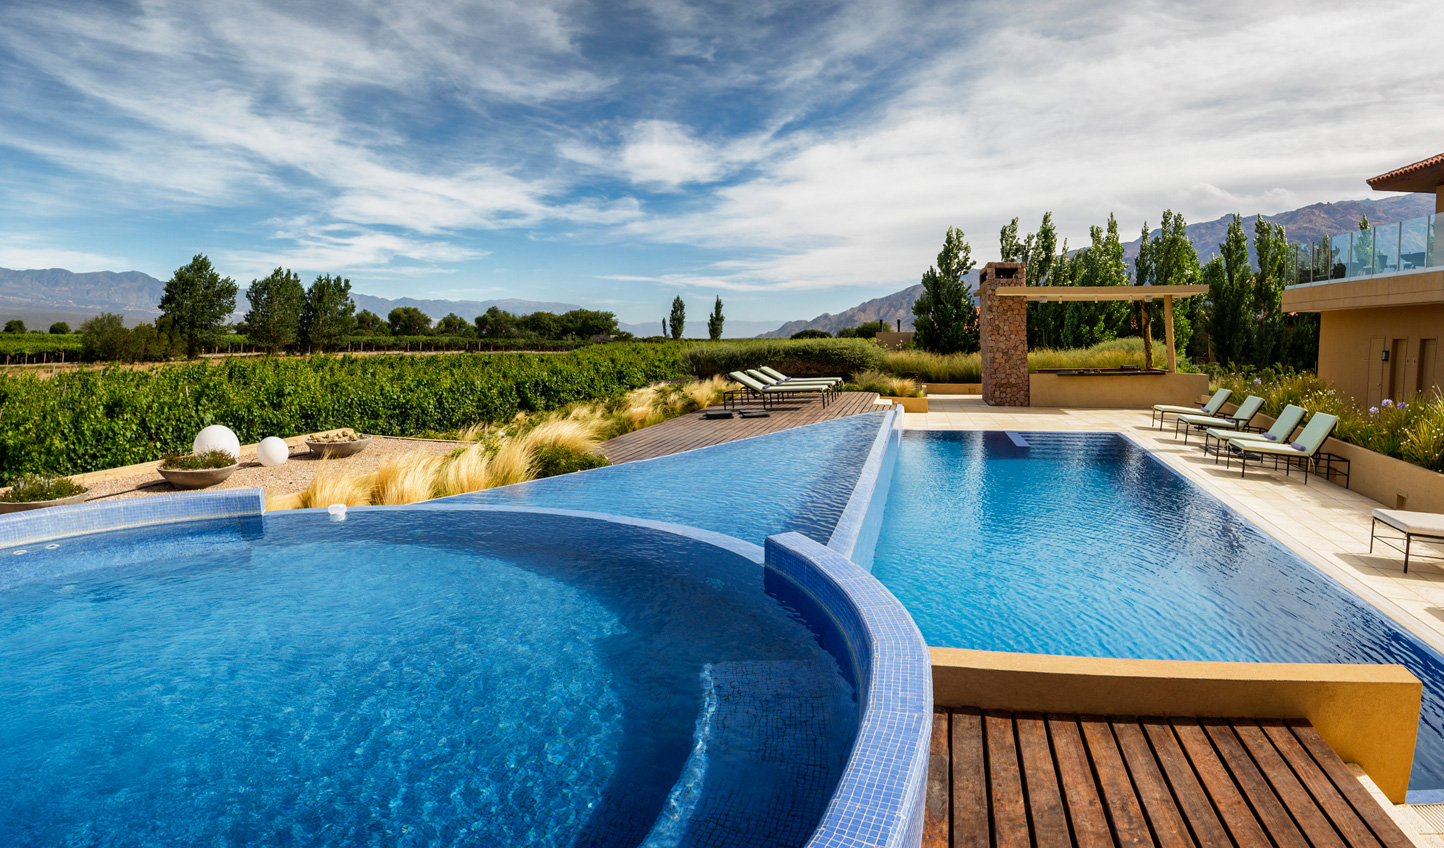 Swimming pools overlook the impressive stretch of vineyards